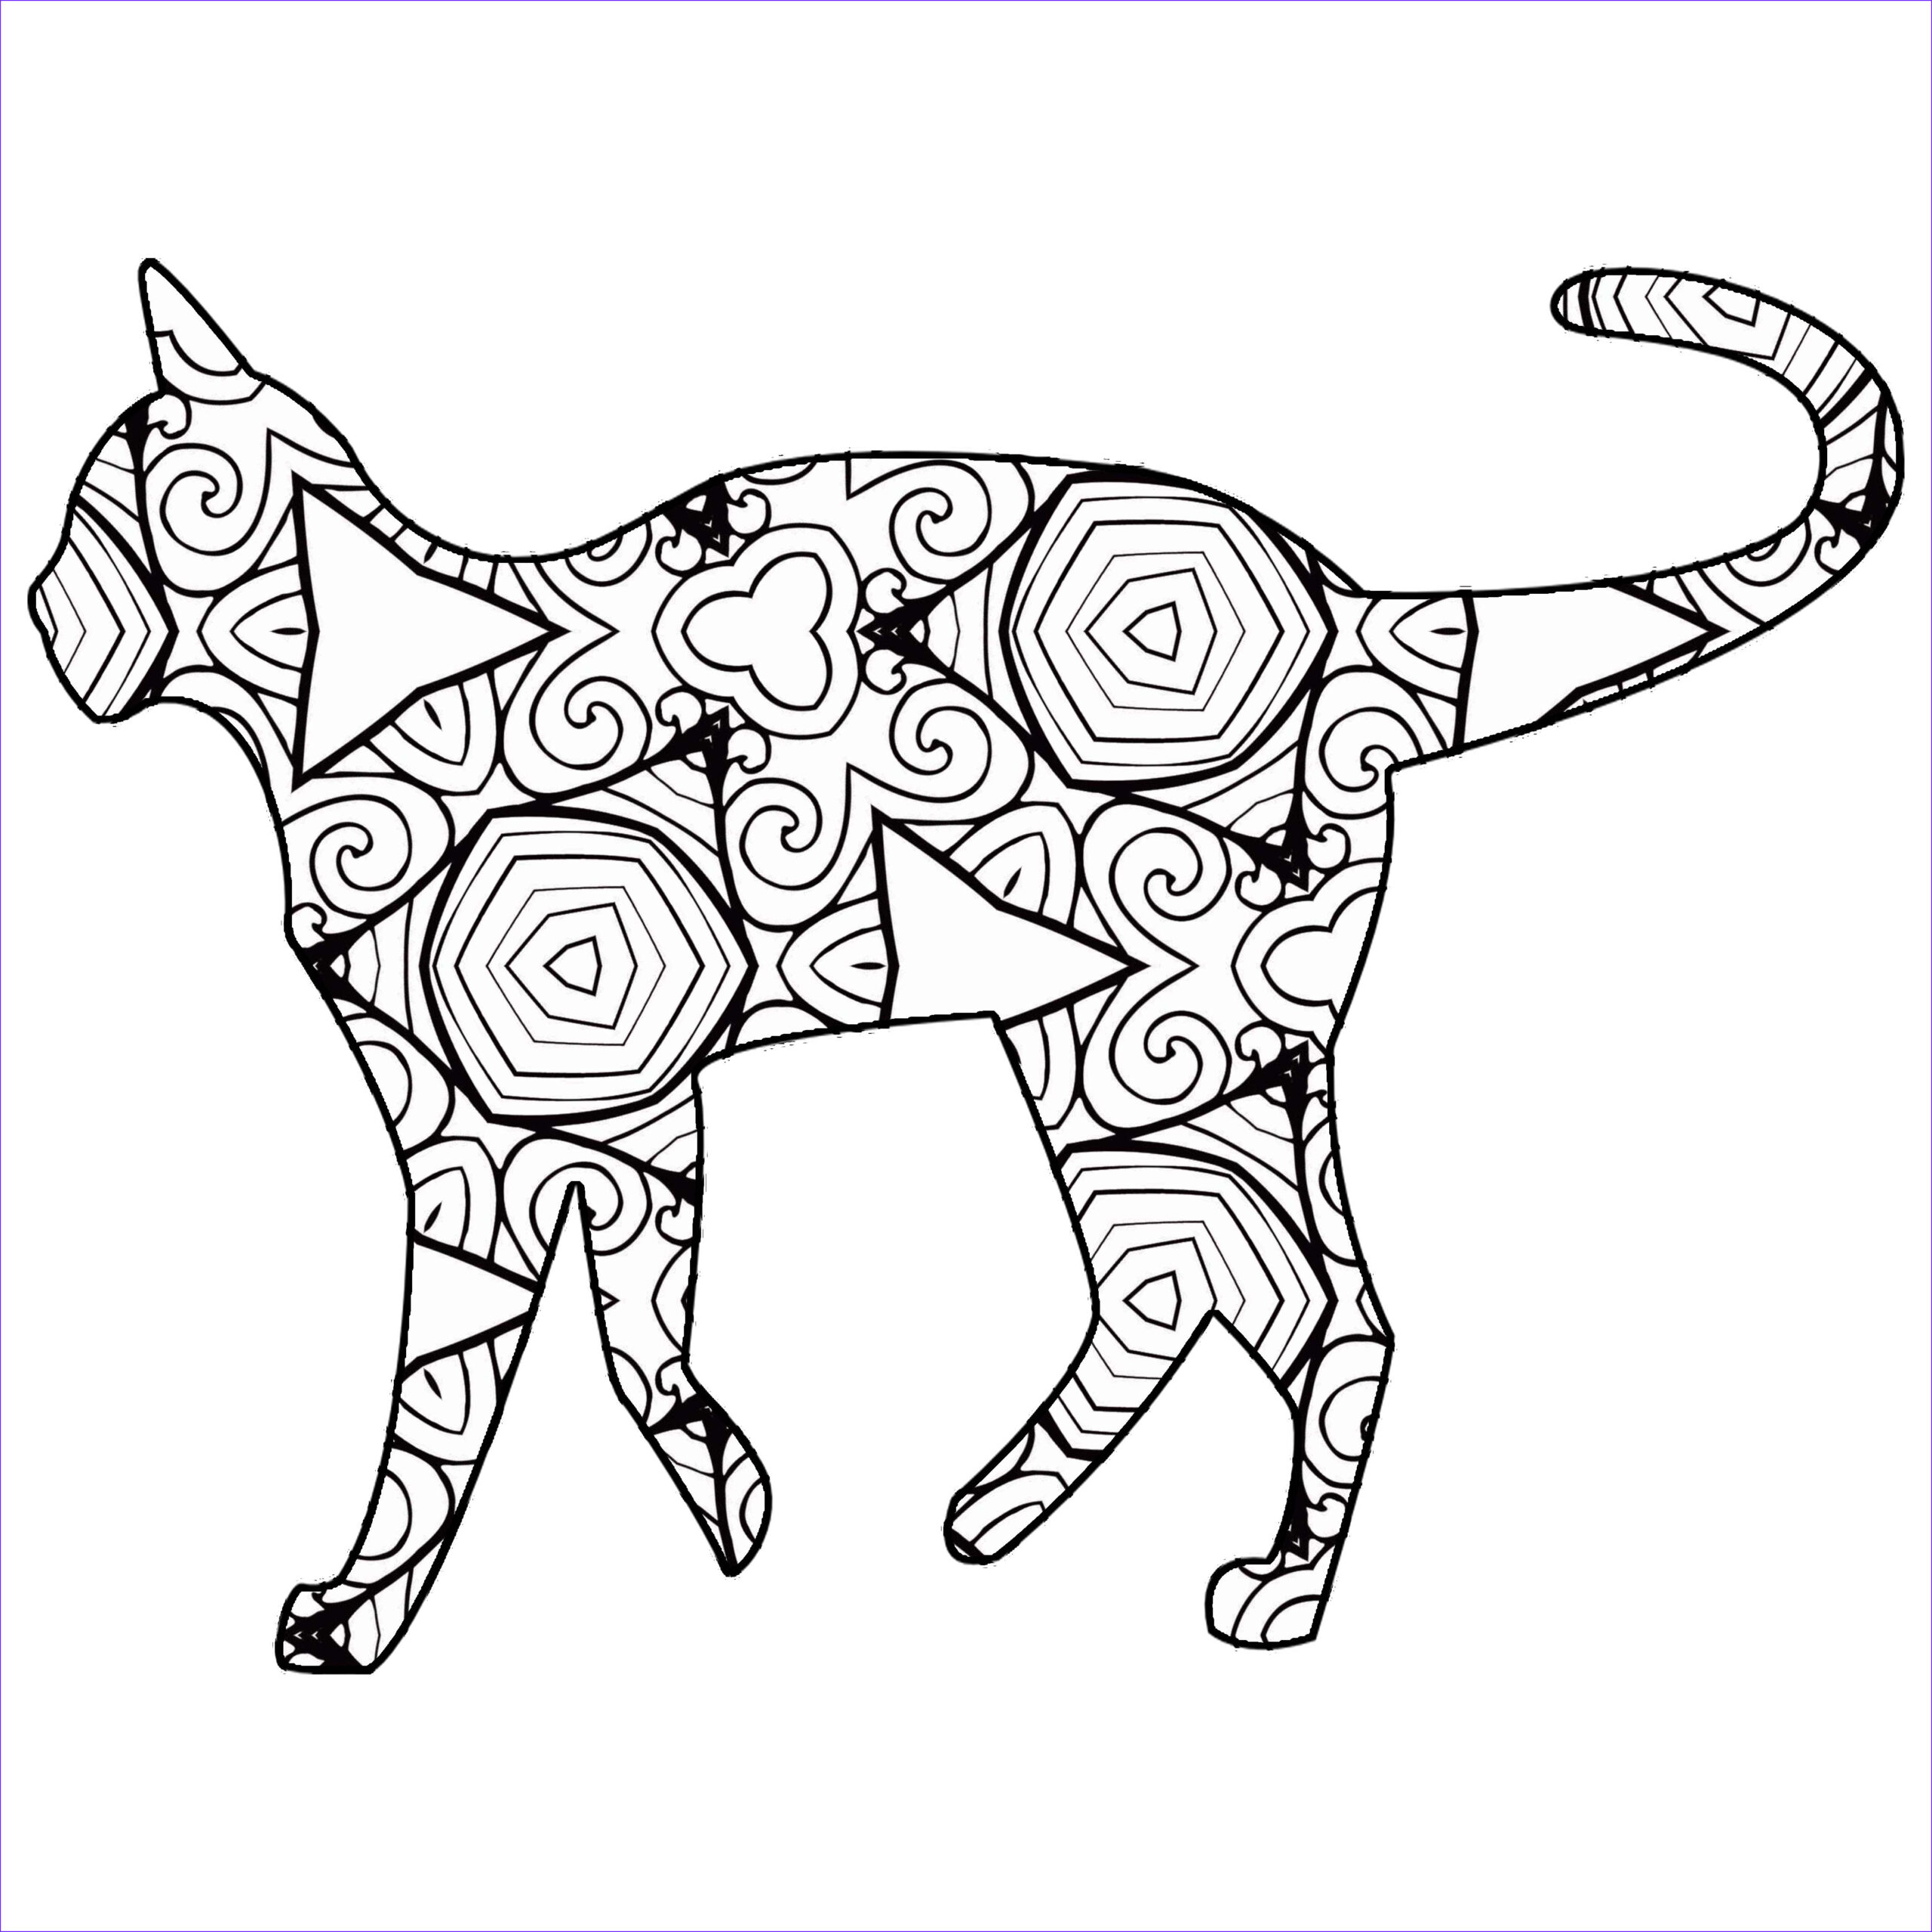 Animal Coloring Pages Printable Beautiful Photography 30 Free Coloring Pages A Geometric Animal Coloring